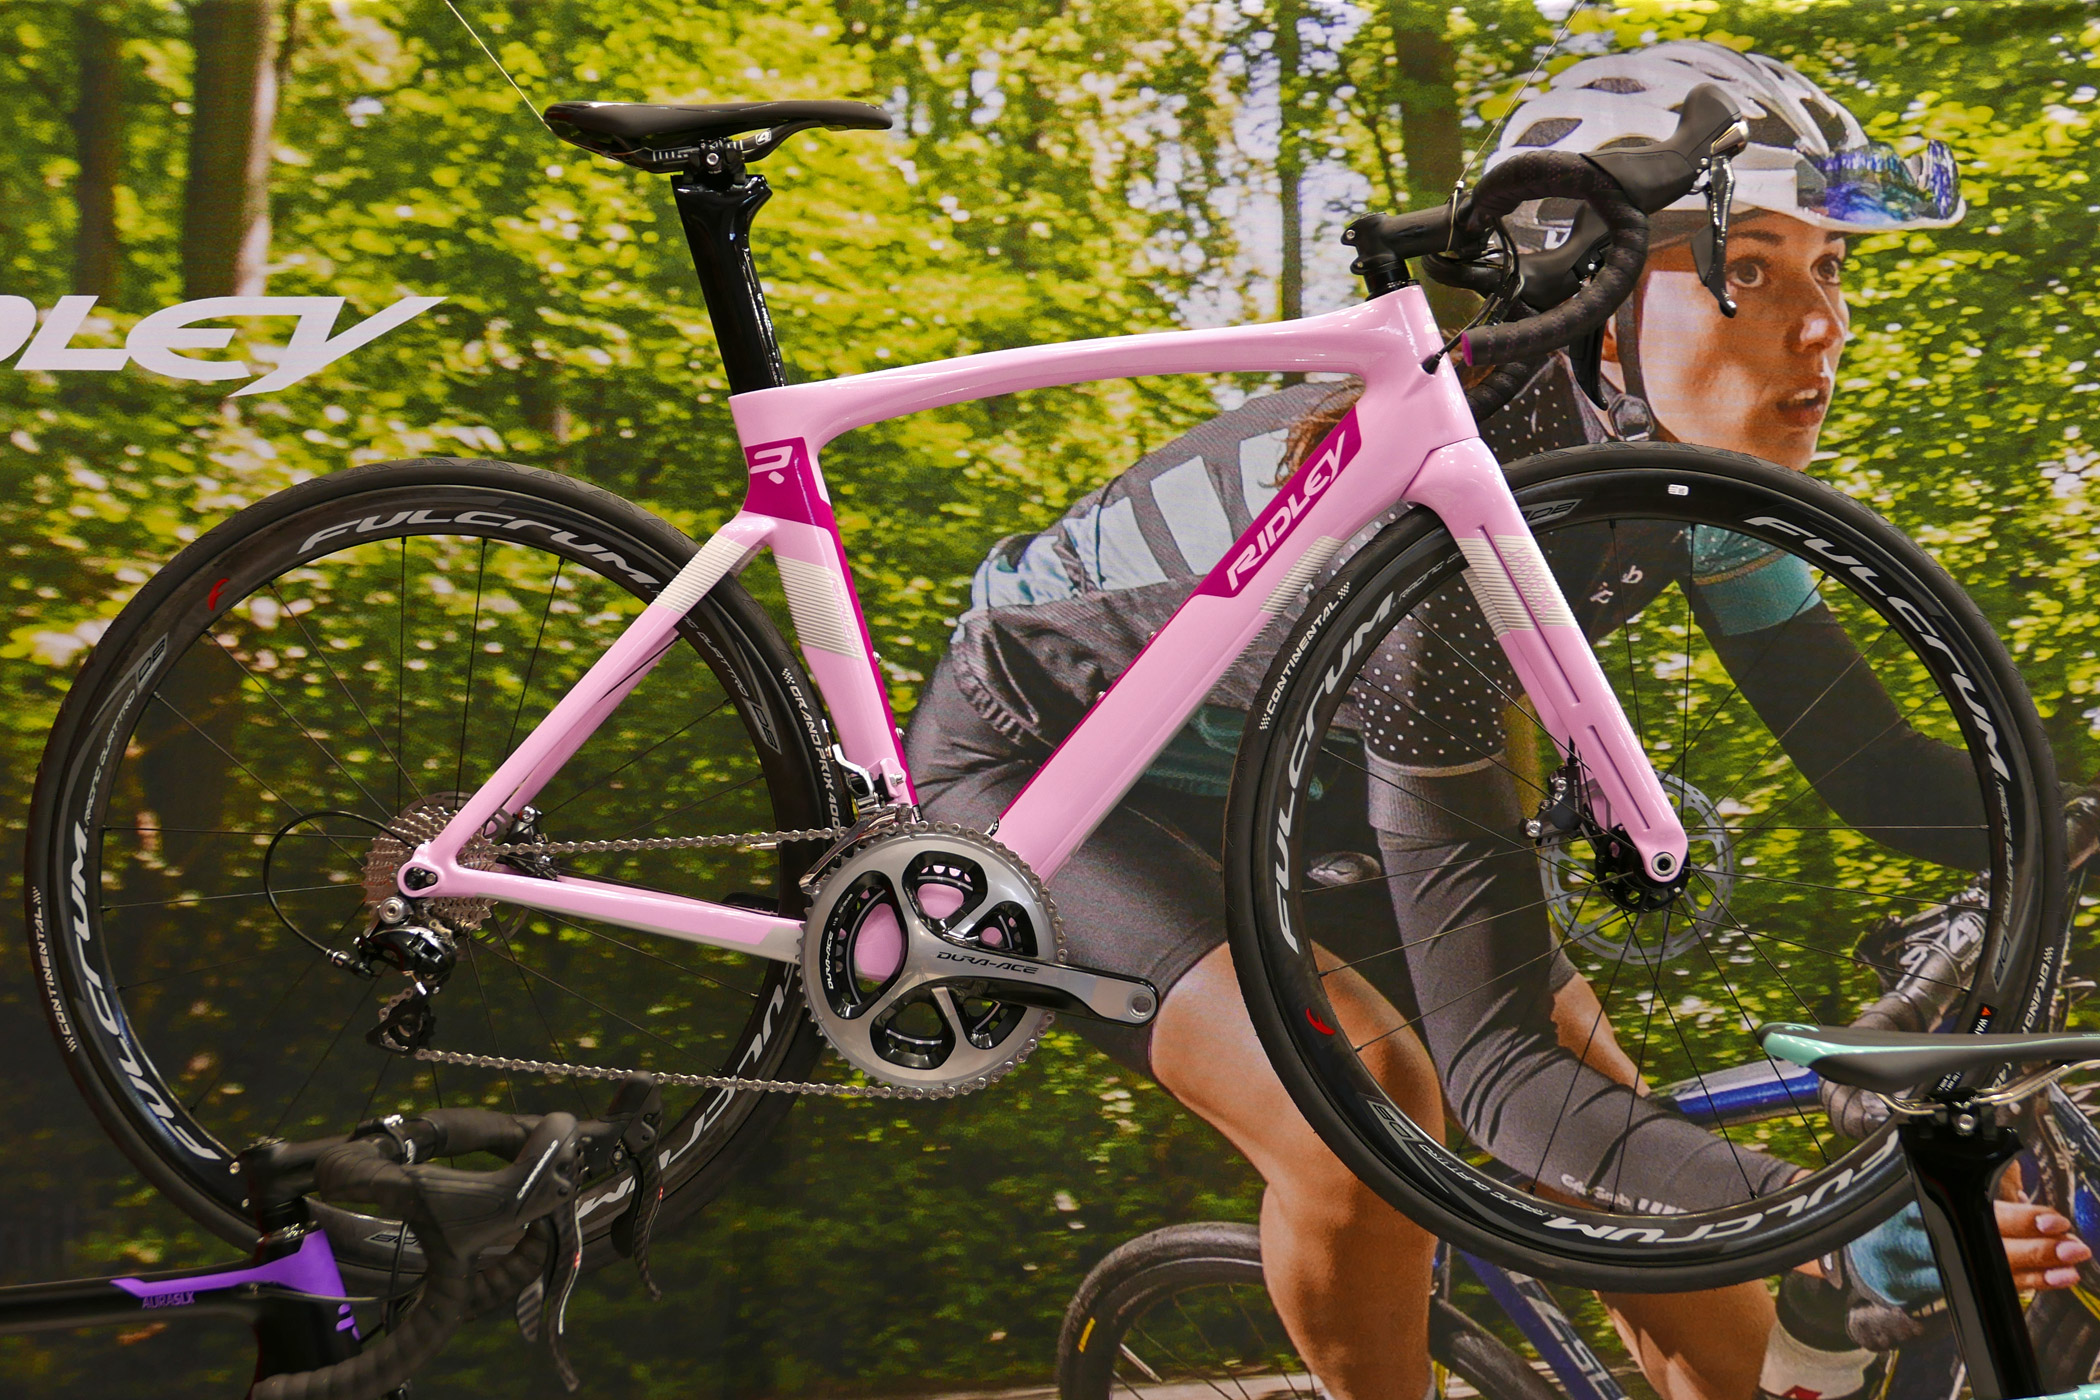 c0e7f514b8c EB16: Ridley introduces new premium race bike range for fast women with  Jane, Aura & Liz